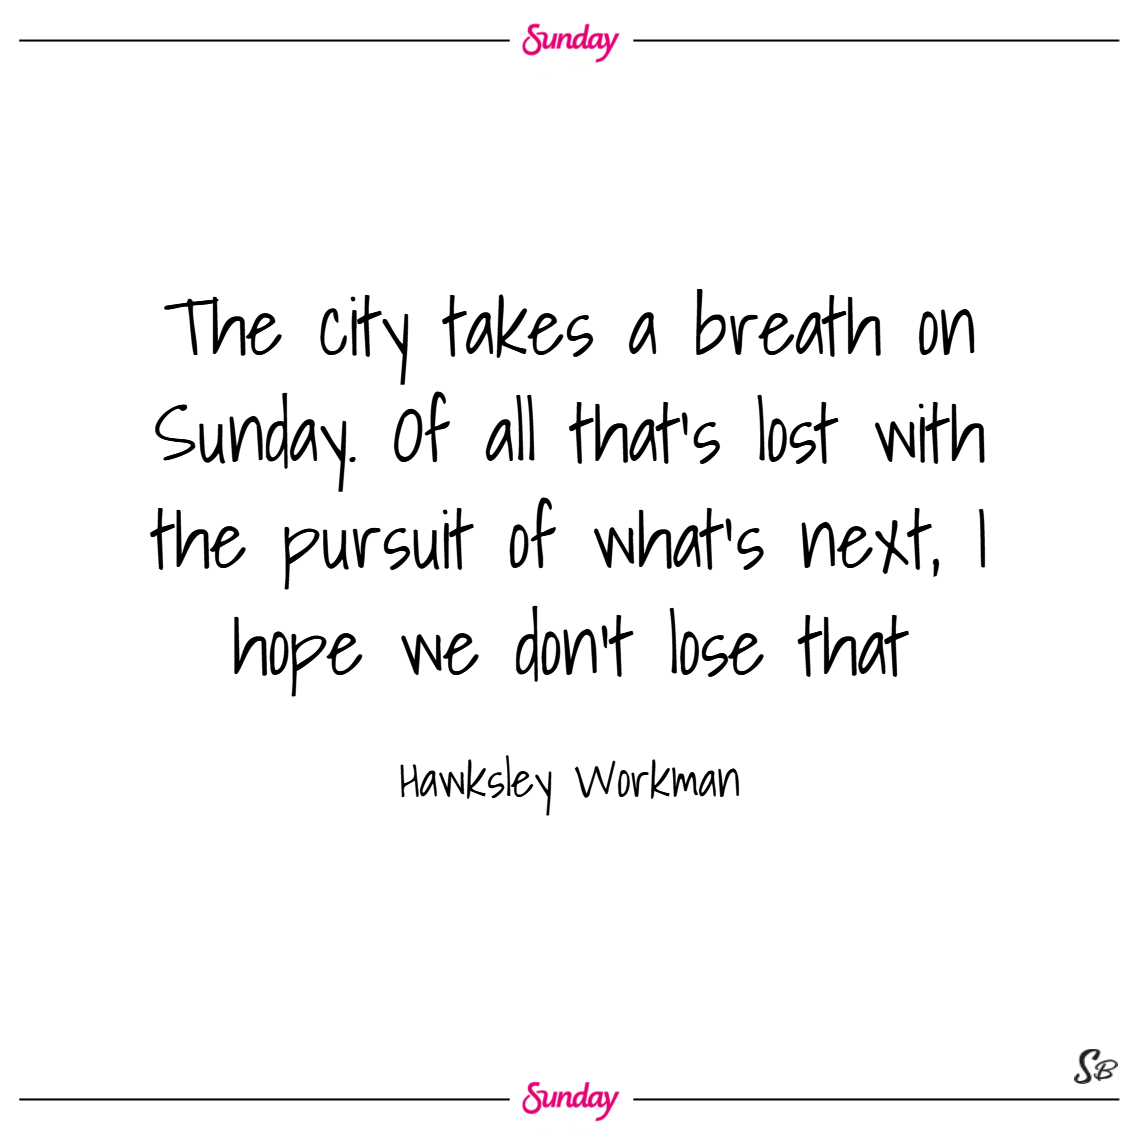 The city takes a breath on sunday. of all that's lost with the pursuit of what's next, i hope we don't lose that. – hawksley workman